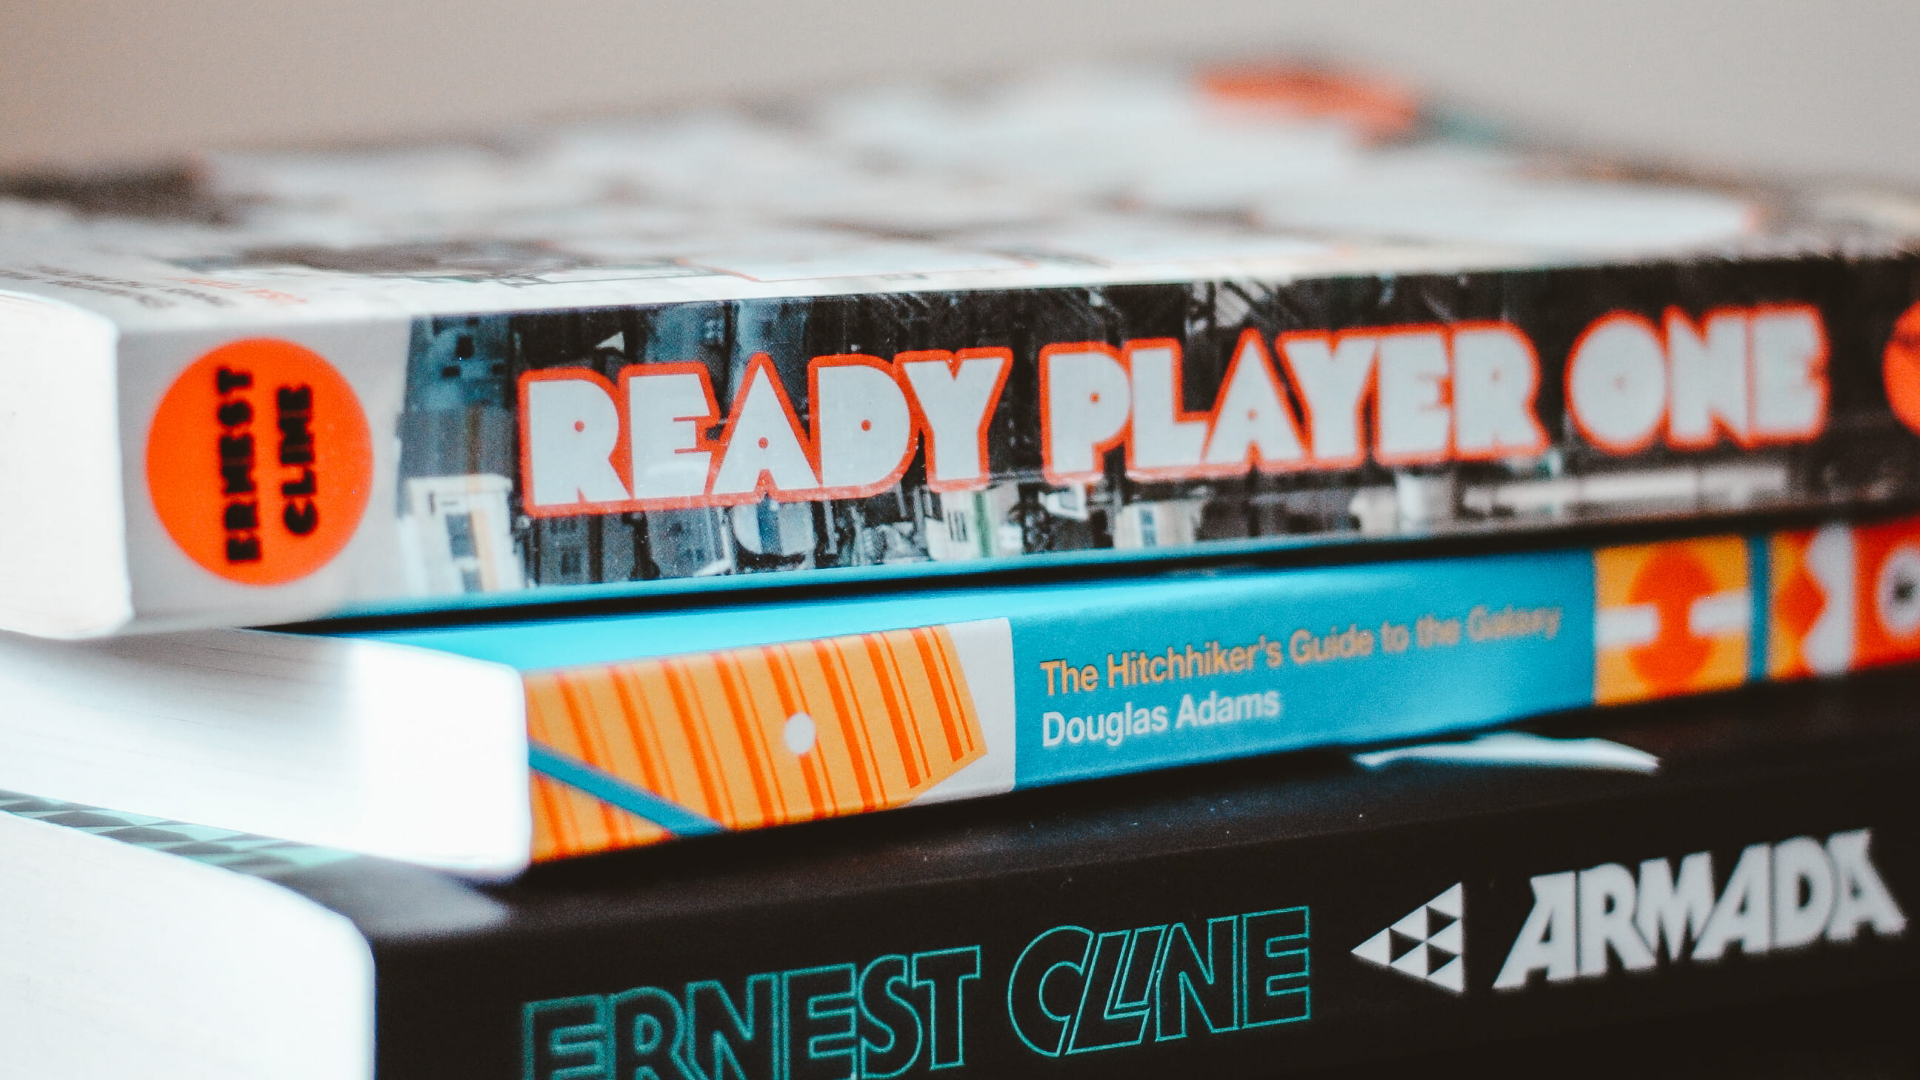 goodreads is giving fans a chance to win a copy of ernest cline s new book ready player two cgmagazine book ready player two